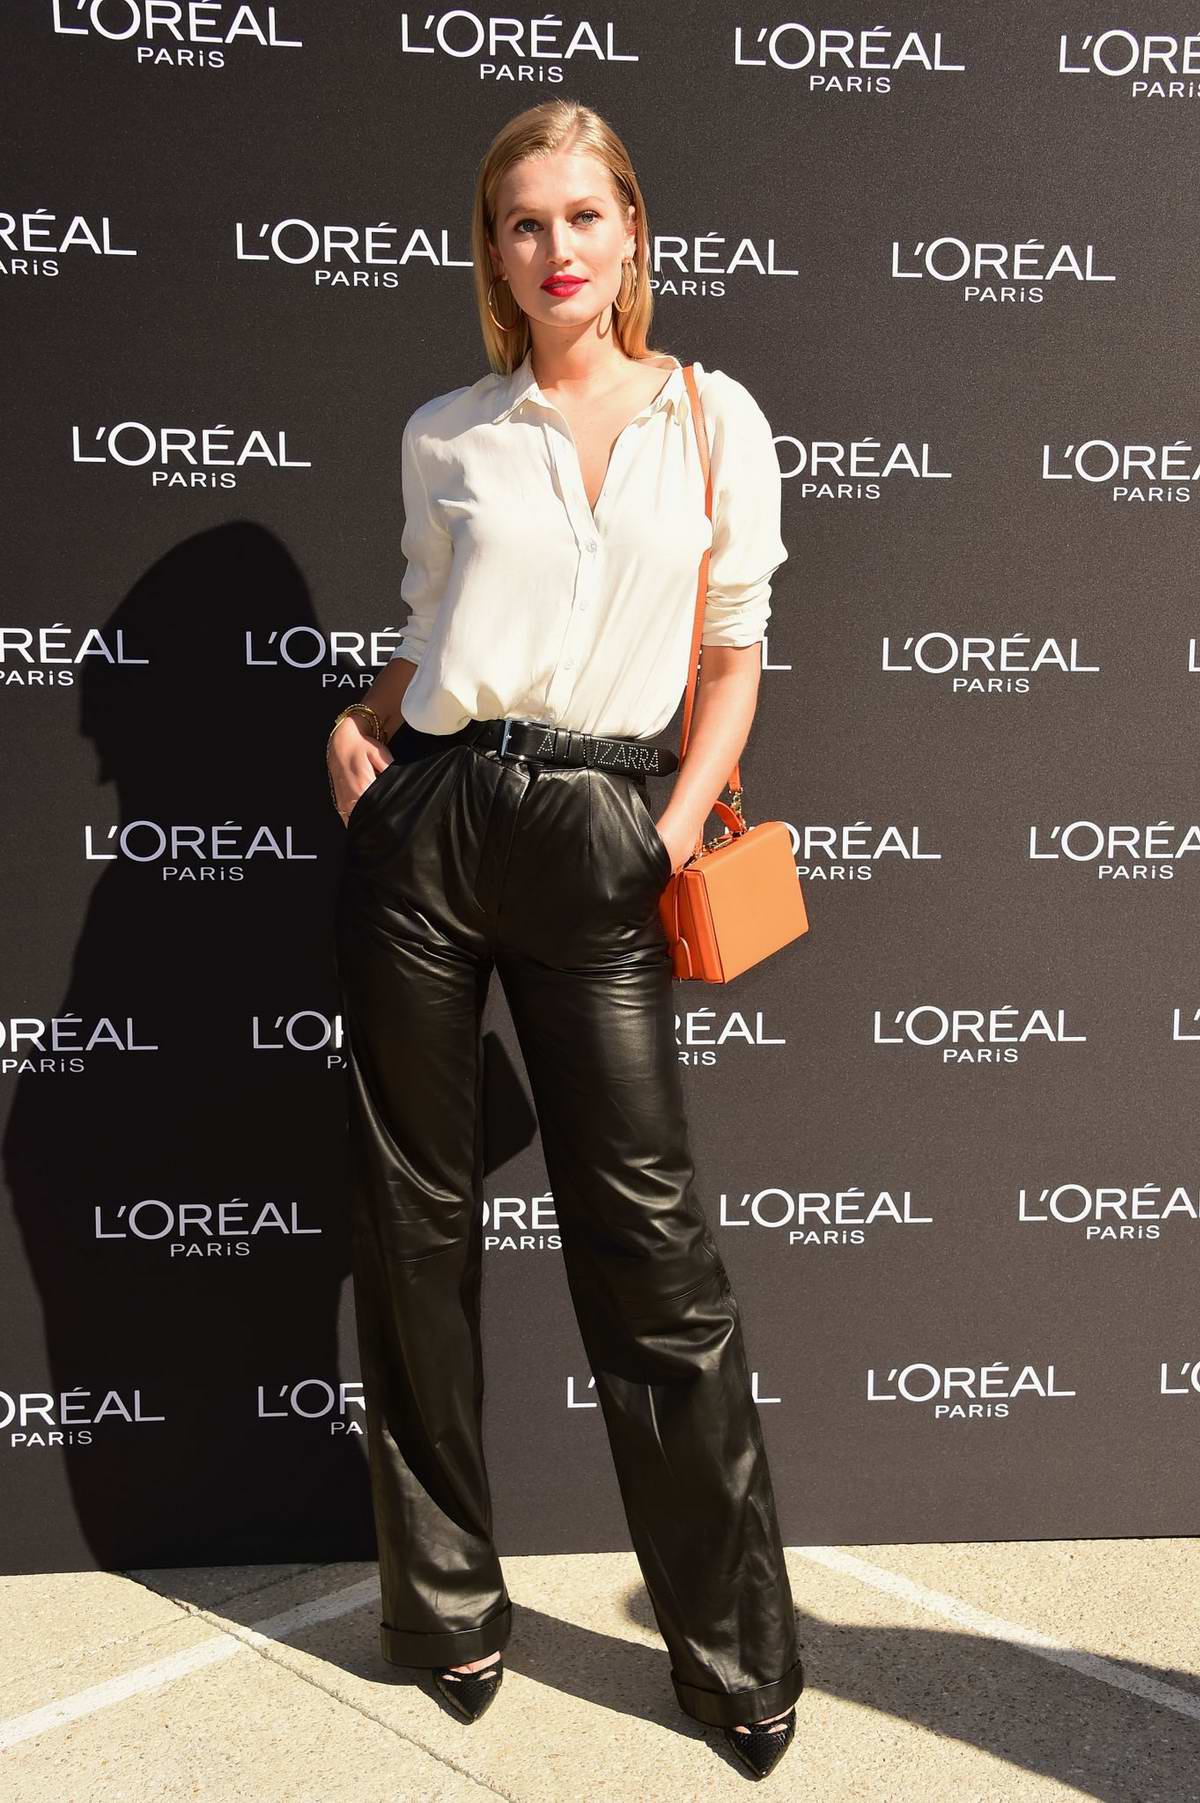 Toni Garrn attends the L'Oreal Fashion Show during Paris Fashion Week in Paris, France